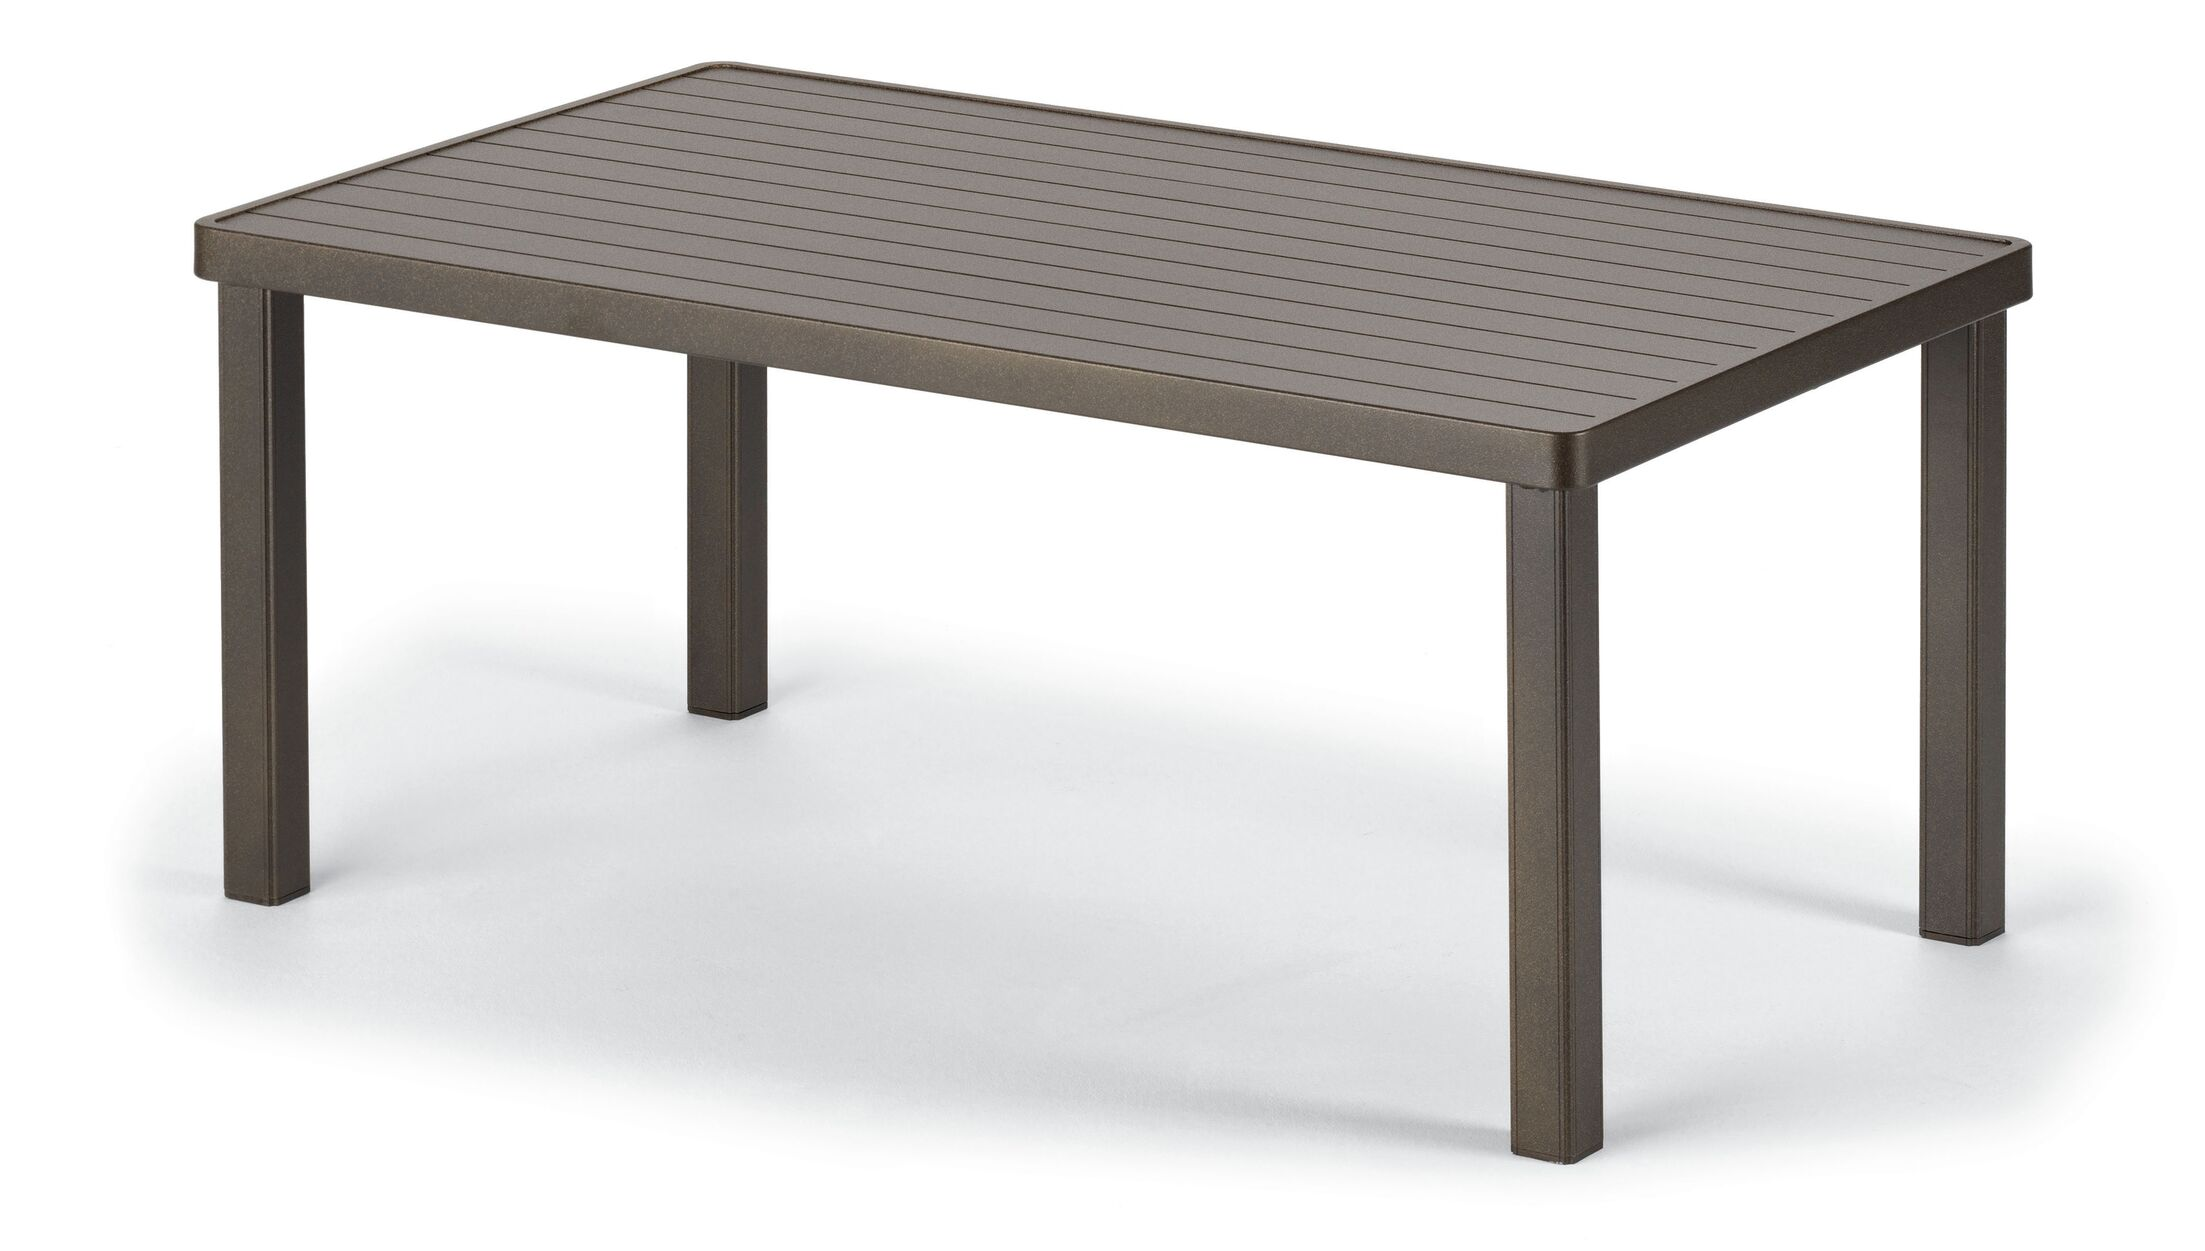 Aluminum Coffee Table Finish: Textured Graphite